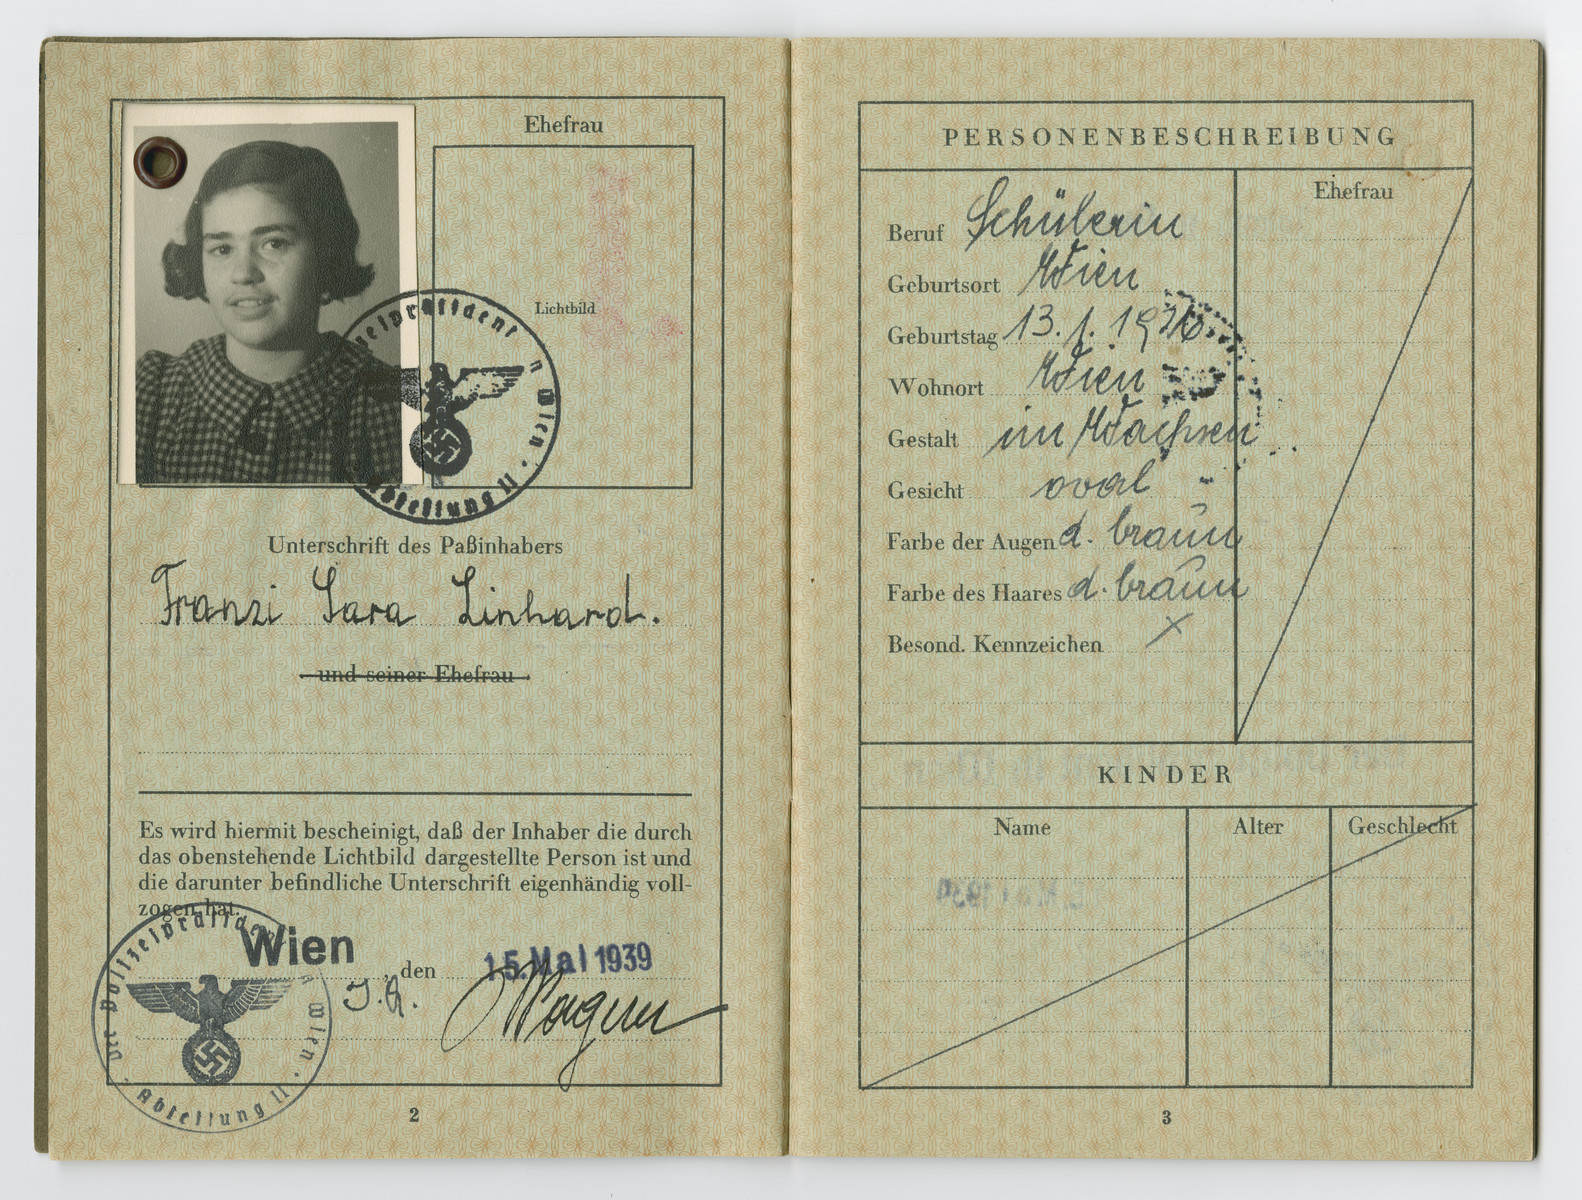 Identification papers issued to Fransi Sara Linhard stating she was born in Vienna.  Sara was not her real middle name, but on August 17, 1938 Nazi officials ordered that all Jewish men assume the middle name Israel, and all Jewish women take the middle name Sara